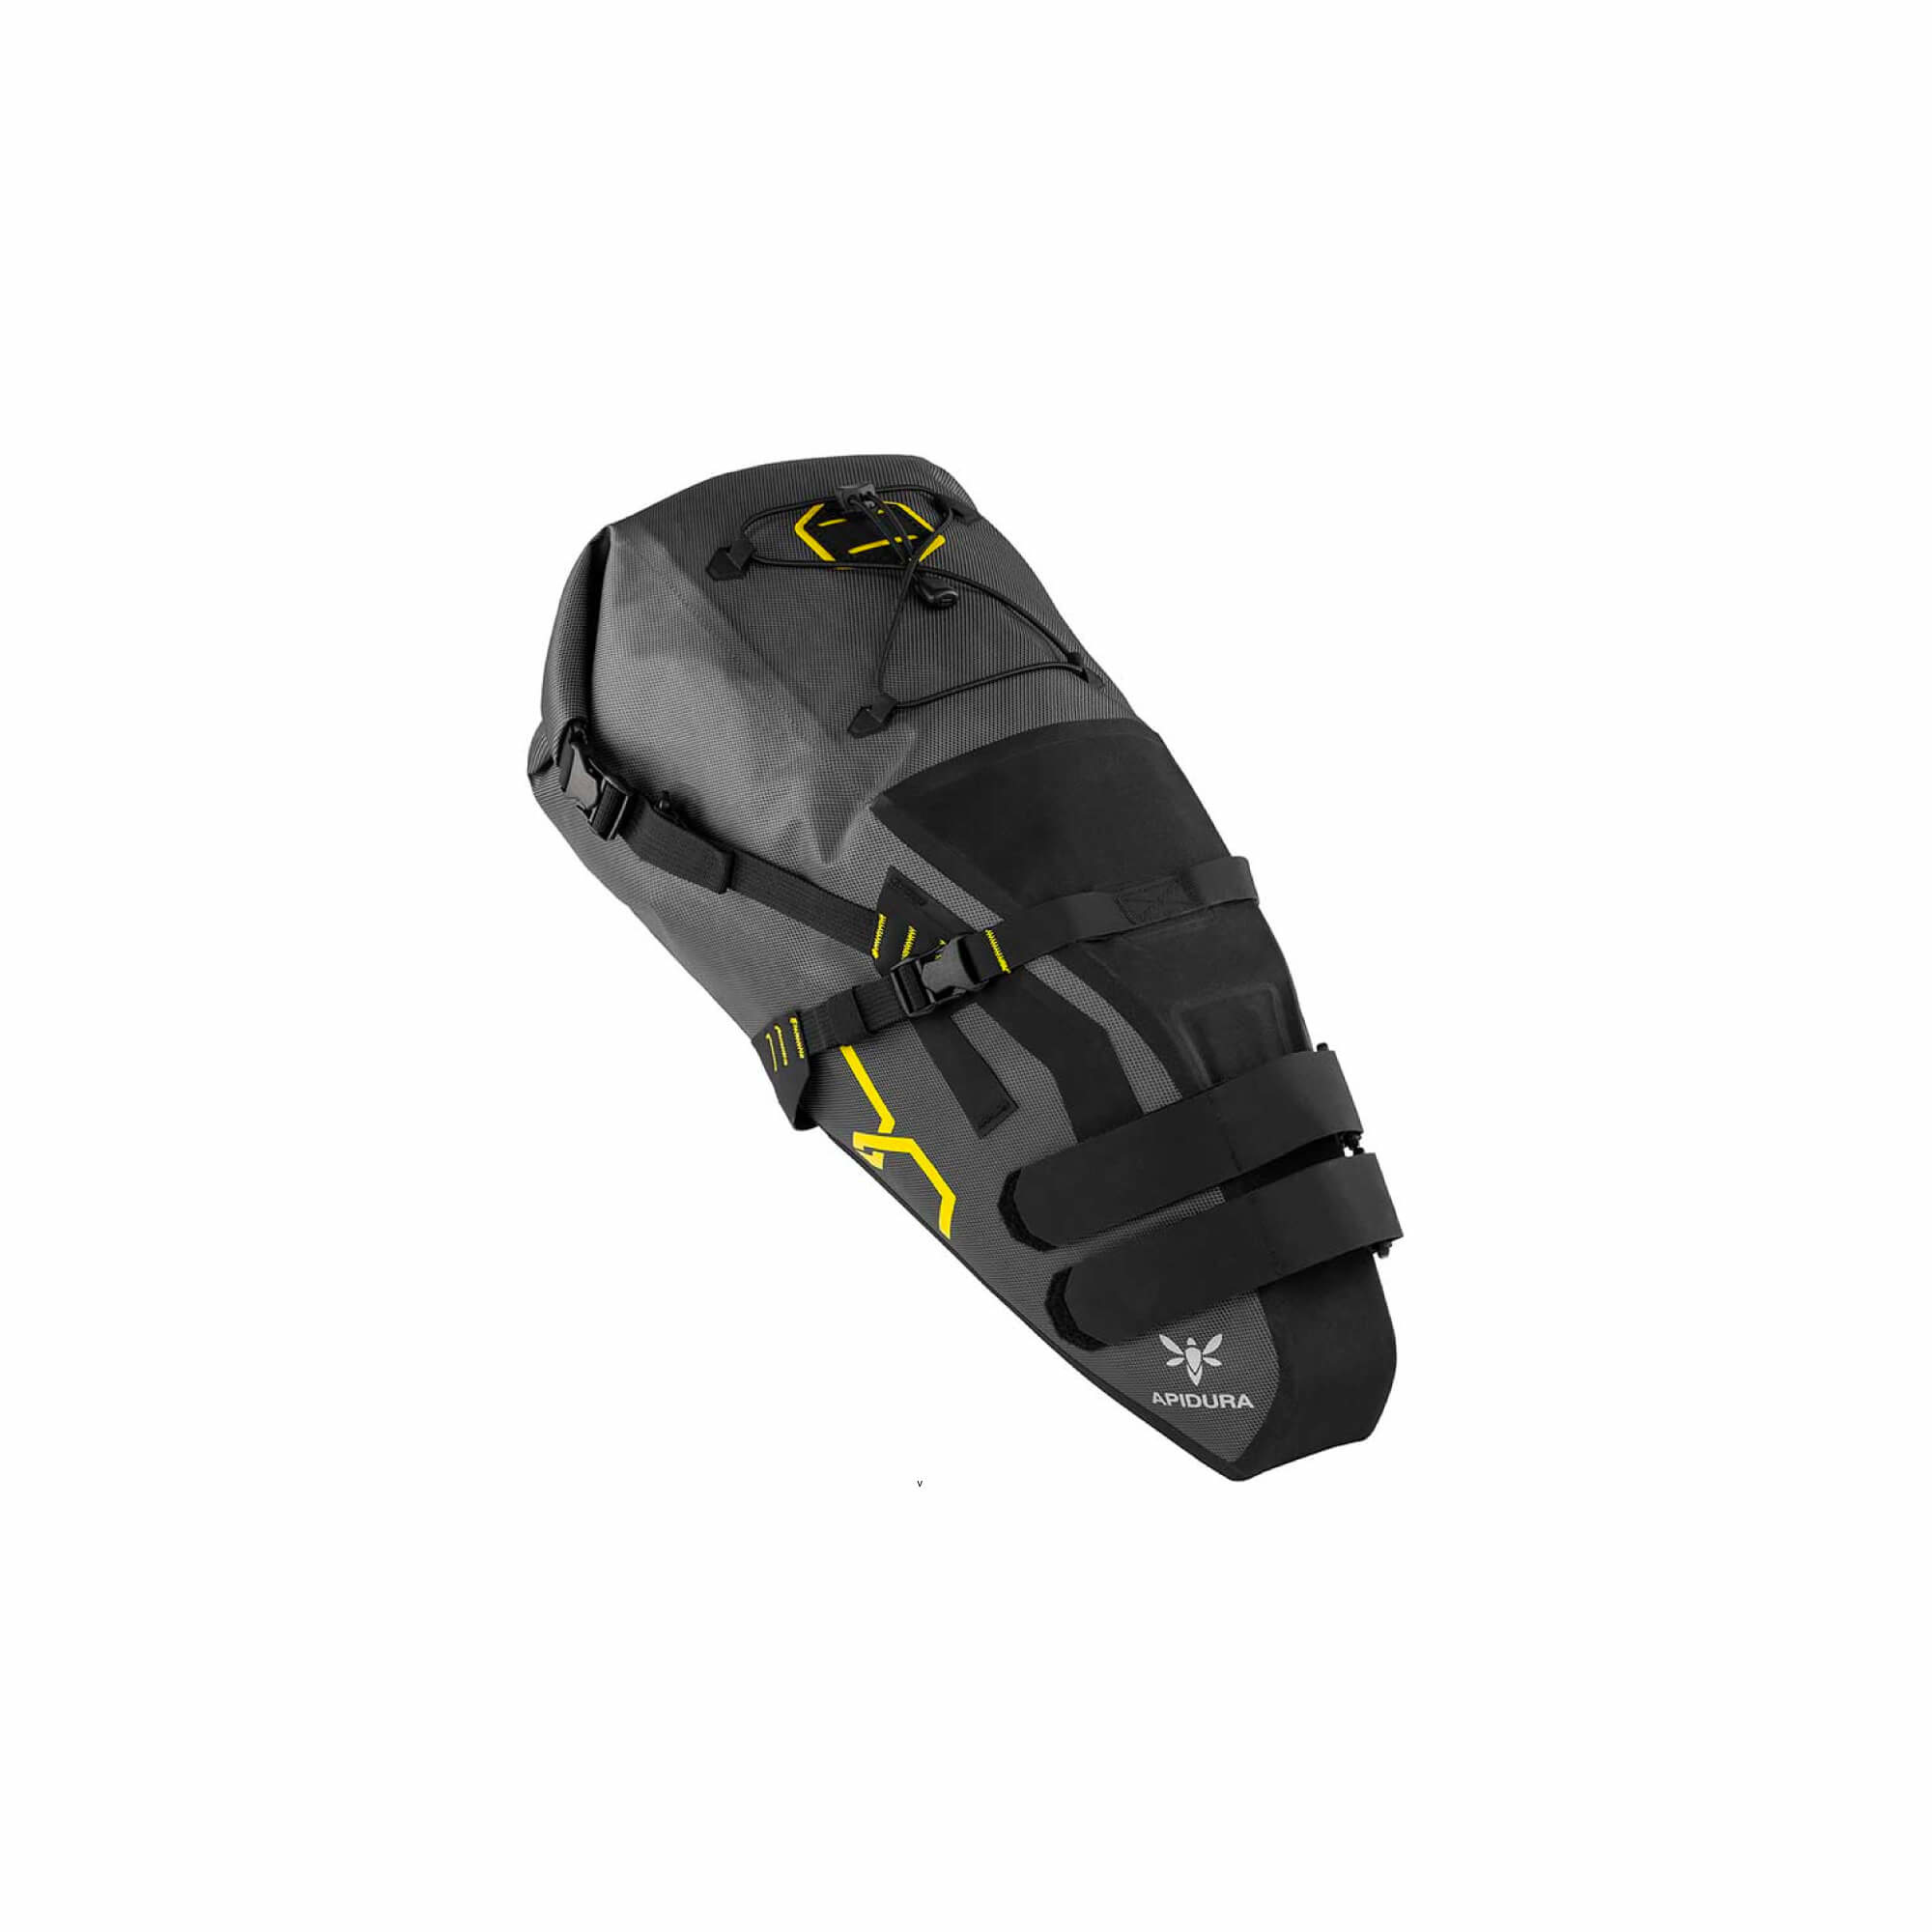 Expedition Saddle Pack 17 L-1